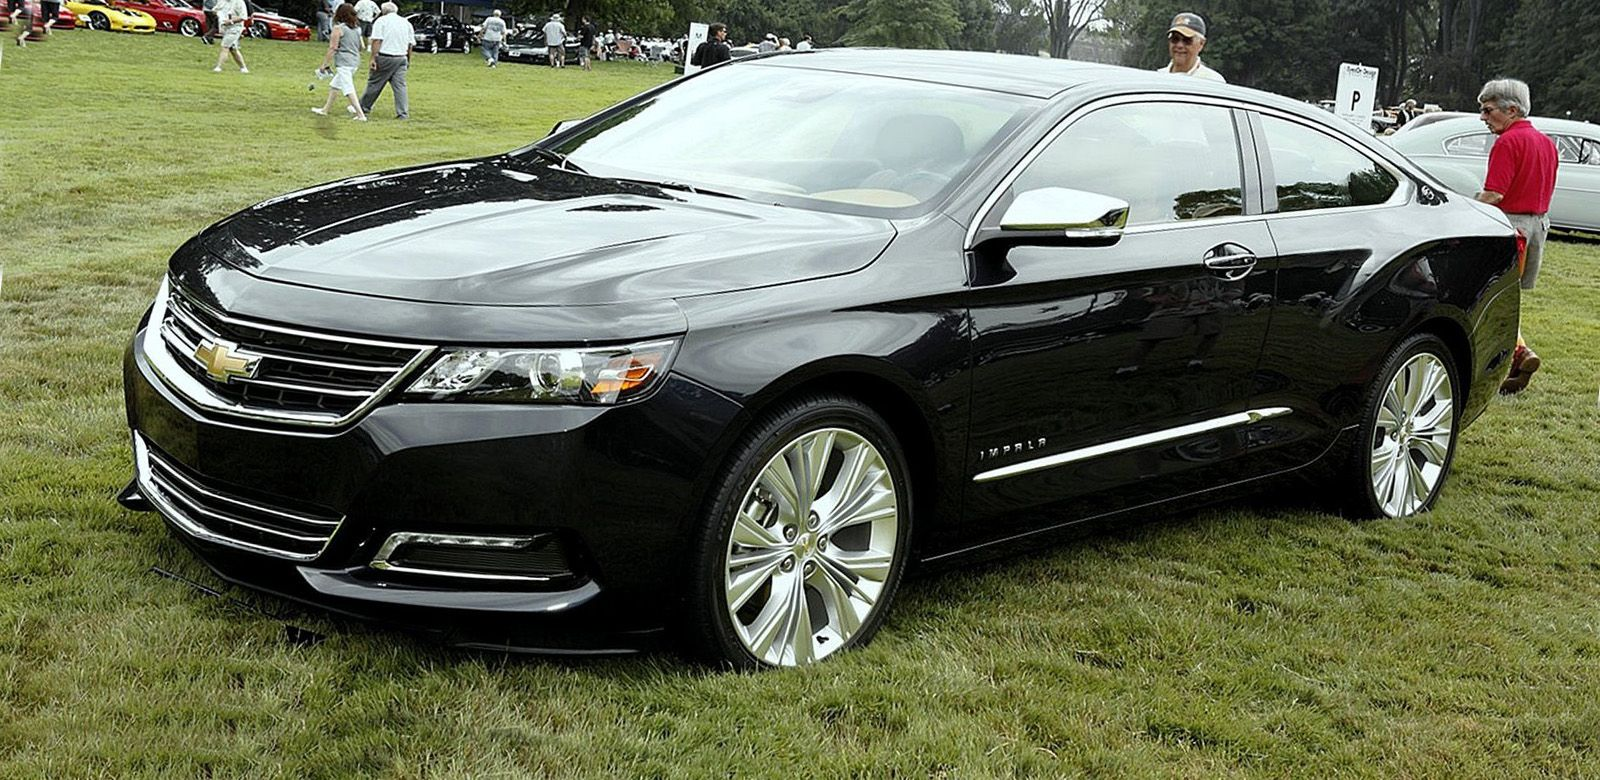 2015 chevy impala ss price and release date sad they lowered the engine to a at only i ll keep my 08 w the thank you